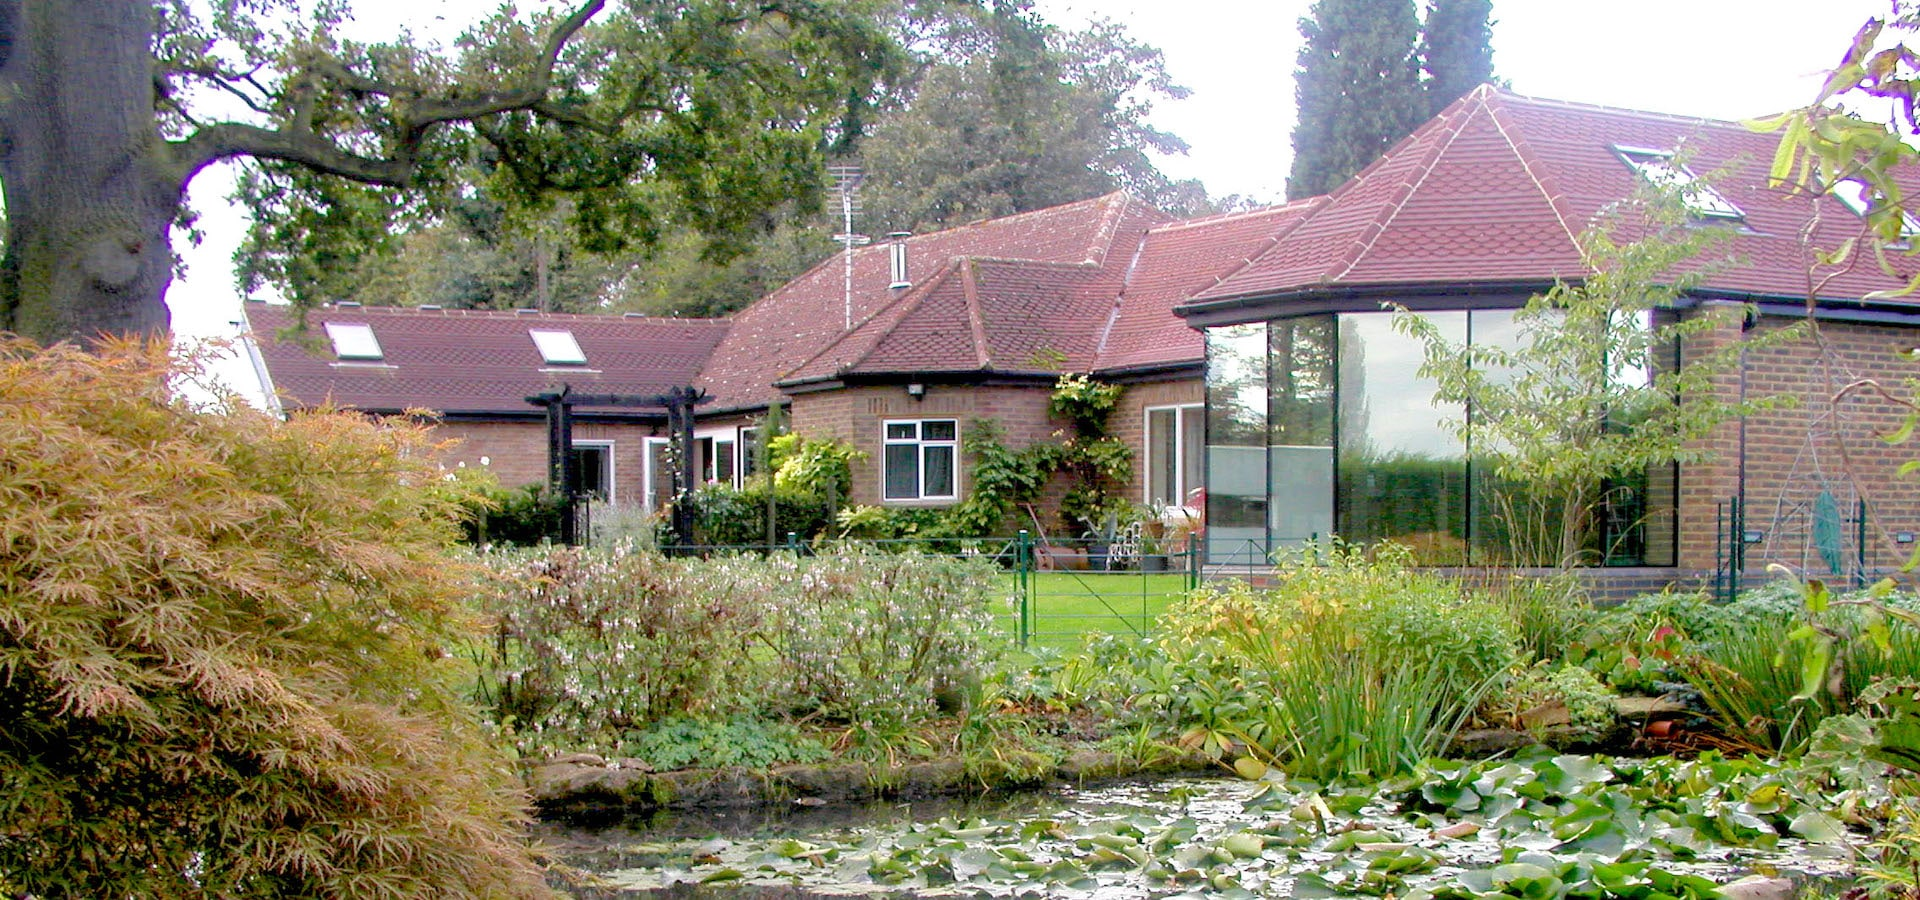 Bed And Breakfast Woburn South Lodge Five Star Boutique Bed And Breakfasts In Milton Keynes